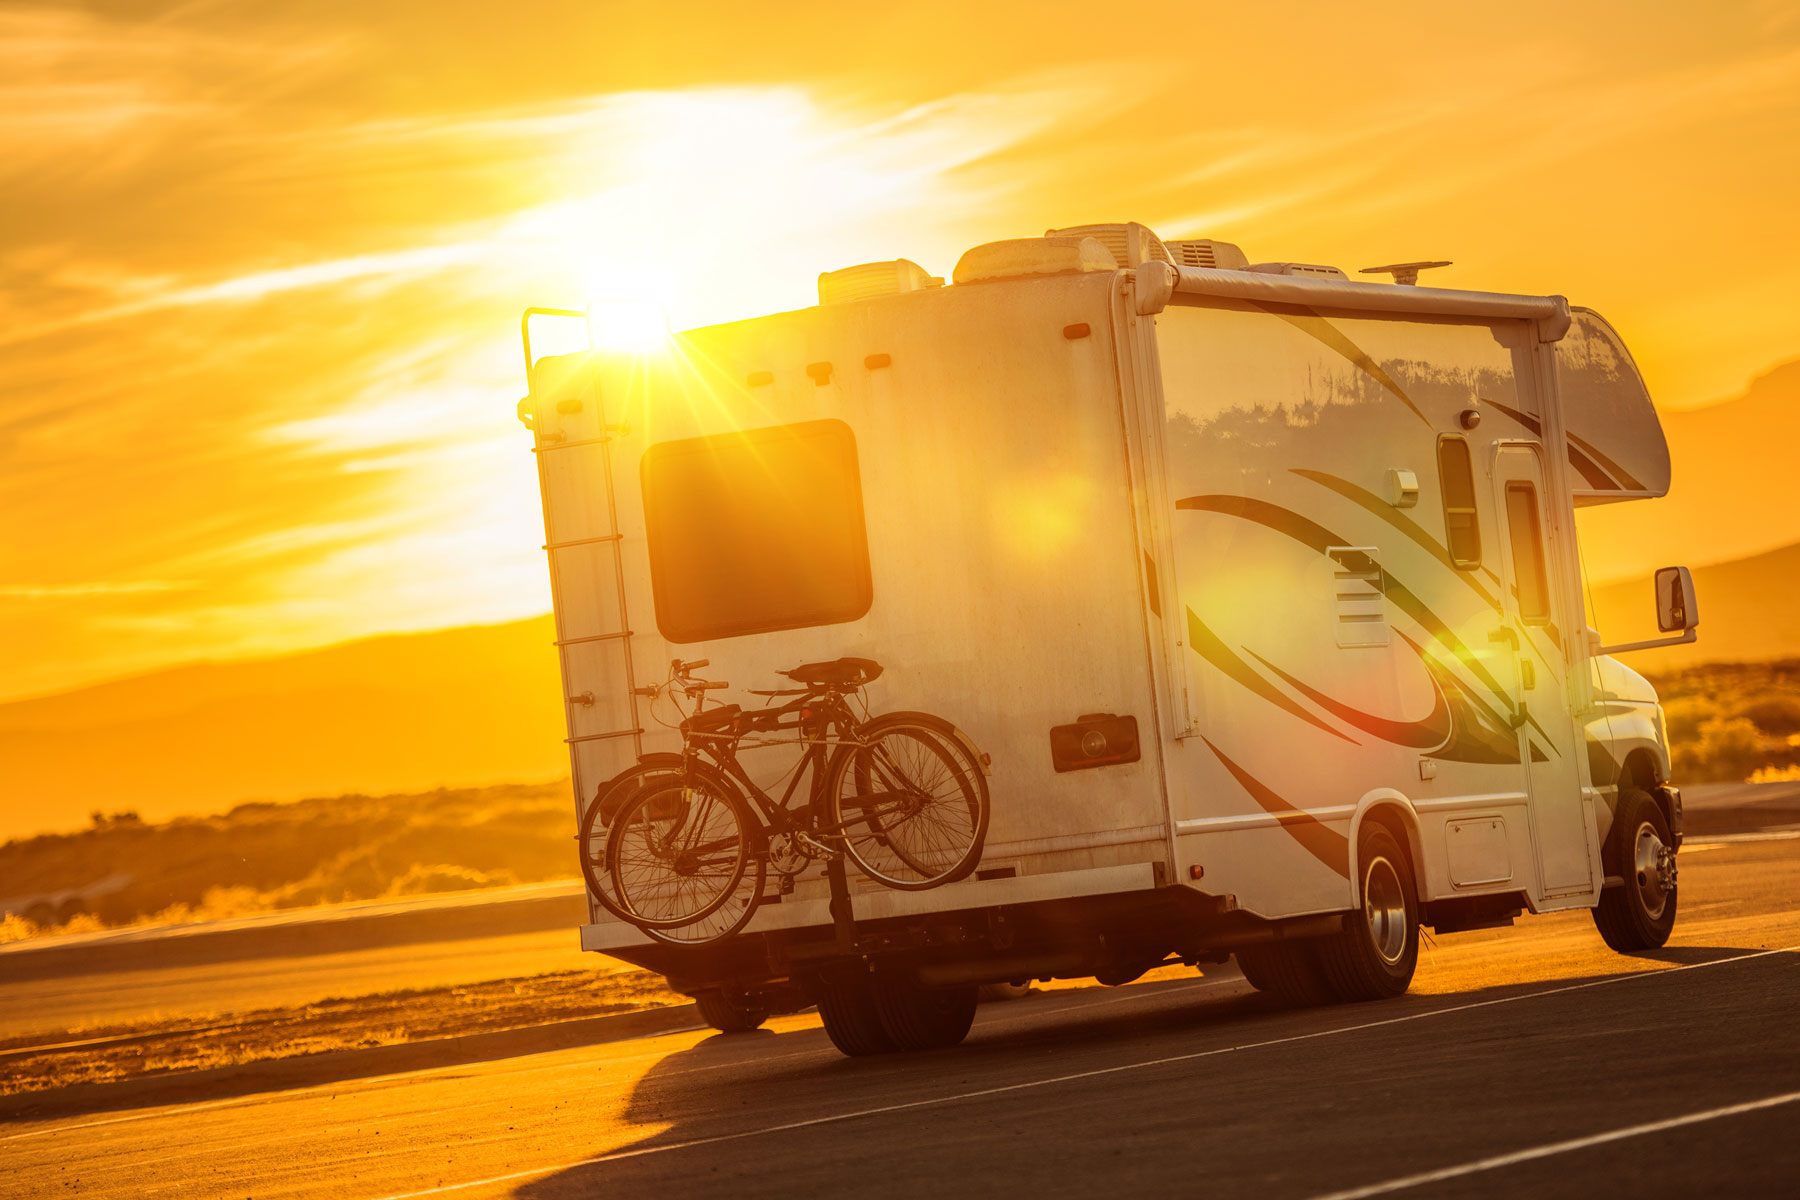 recreational vehicle driving into sunset